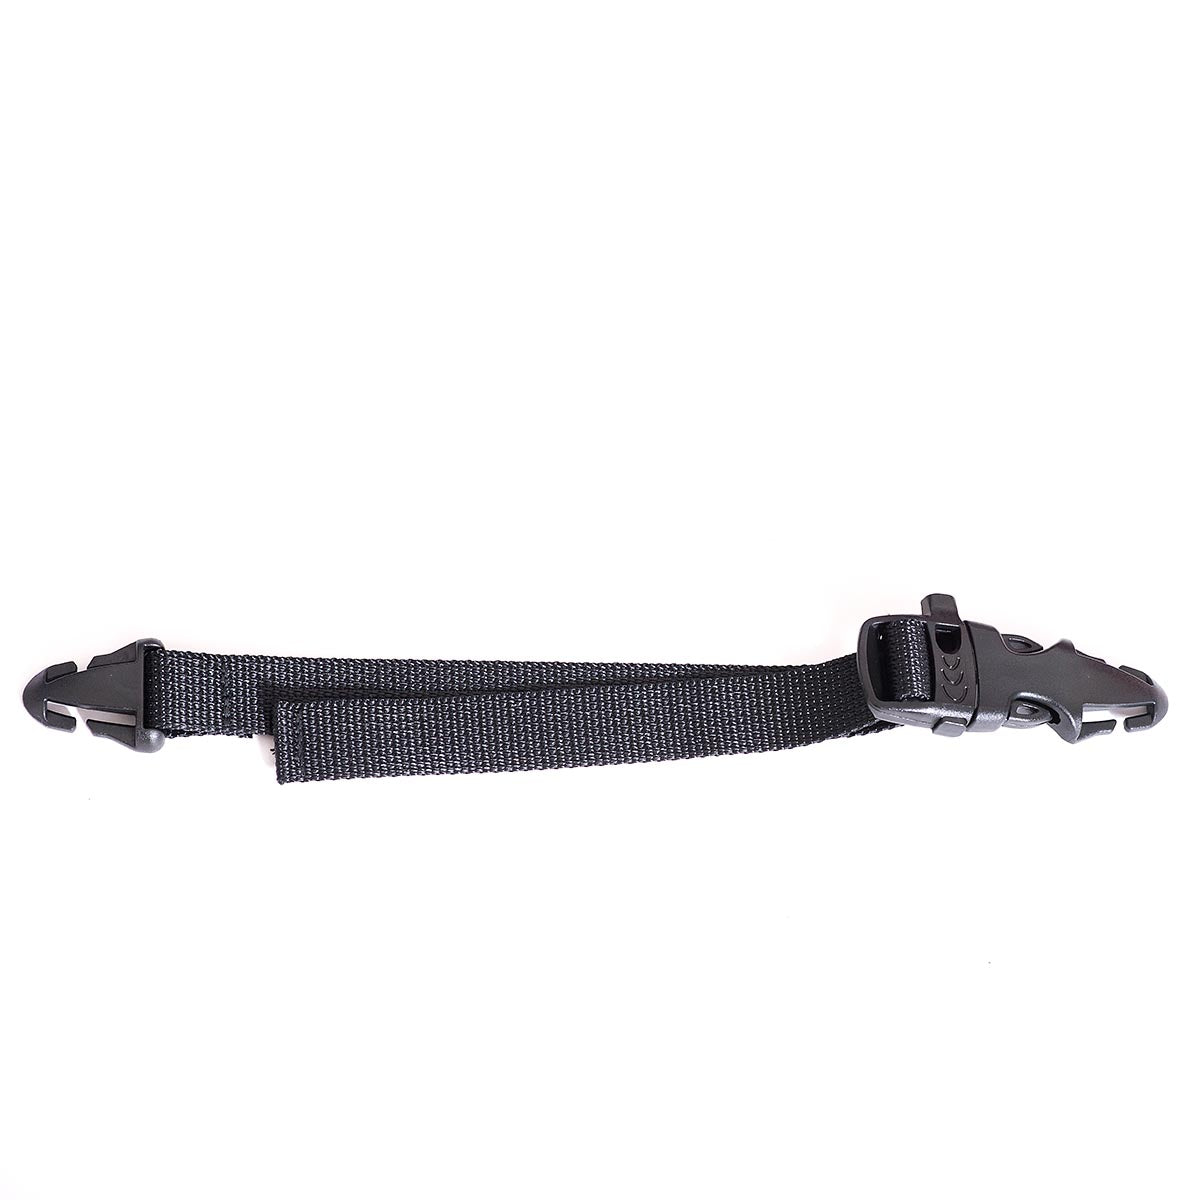 Sternum Strap with emergency whistle